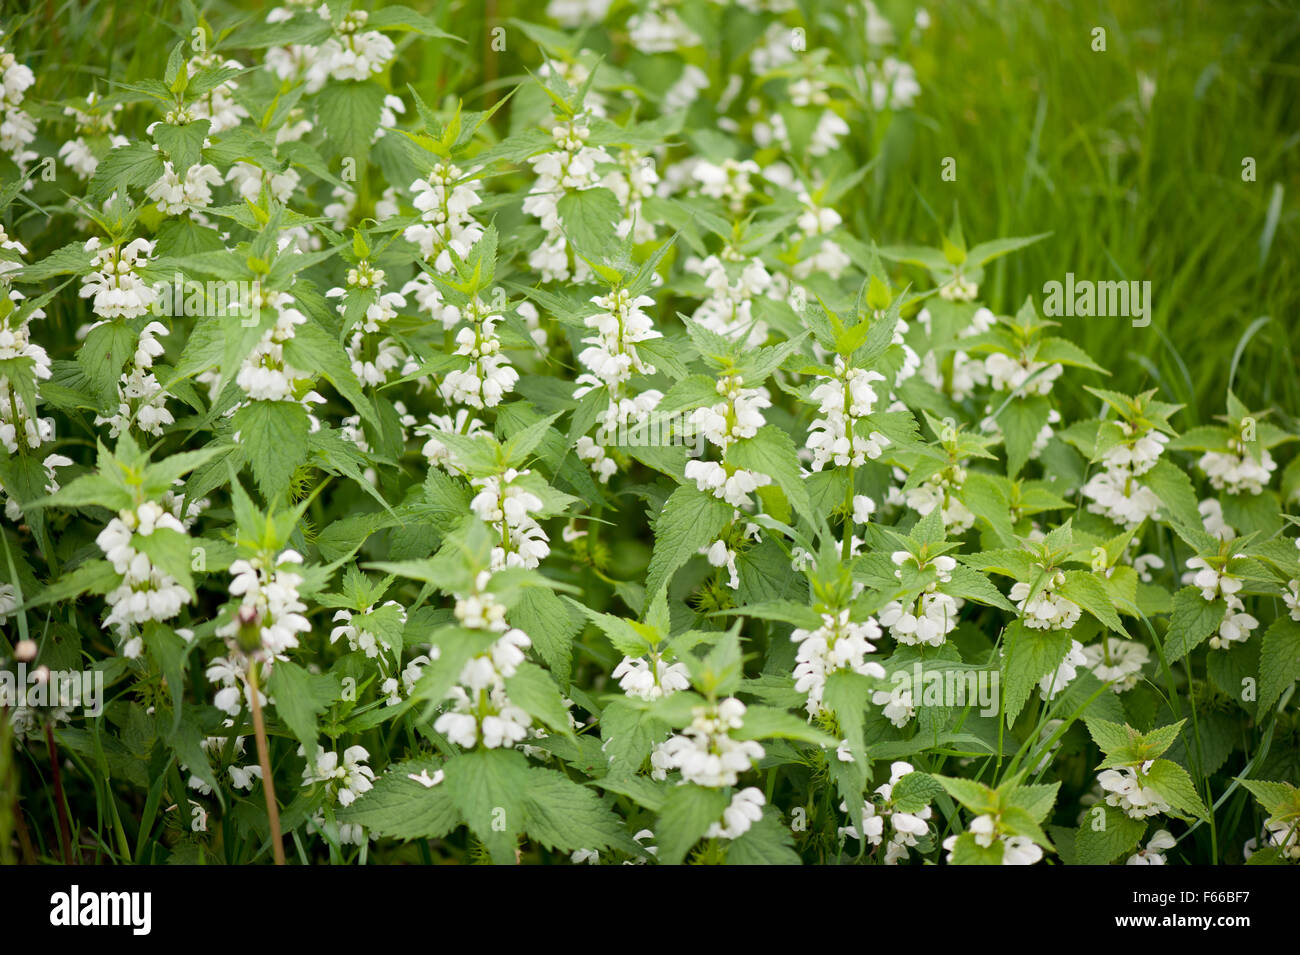 Lamium Album White Flowering Herbal Medicine Perennial Plant In The